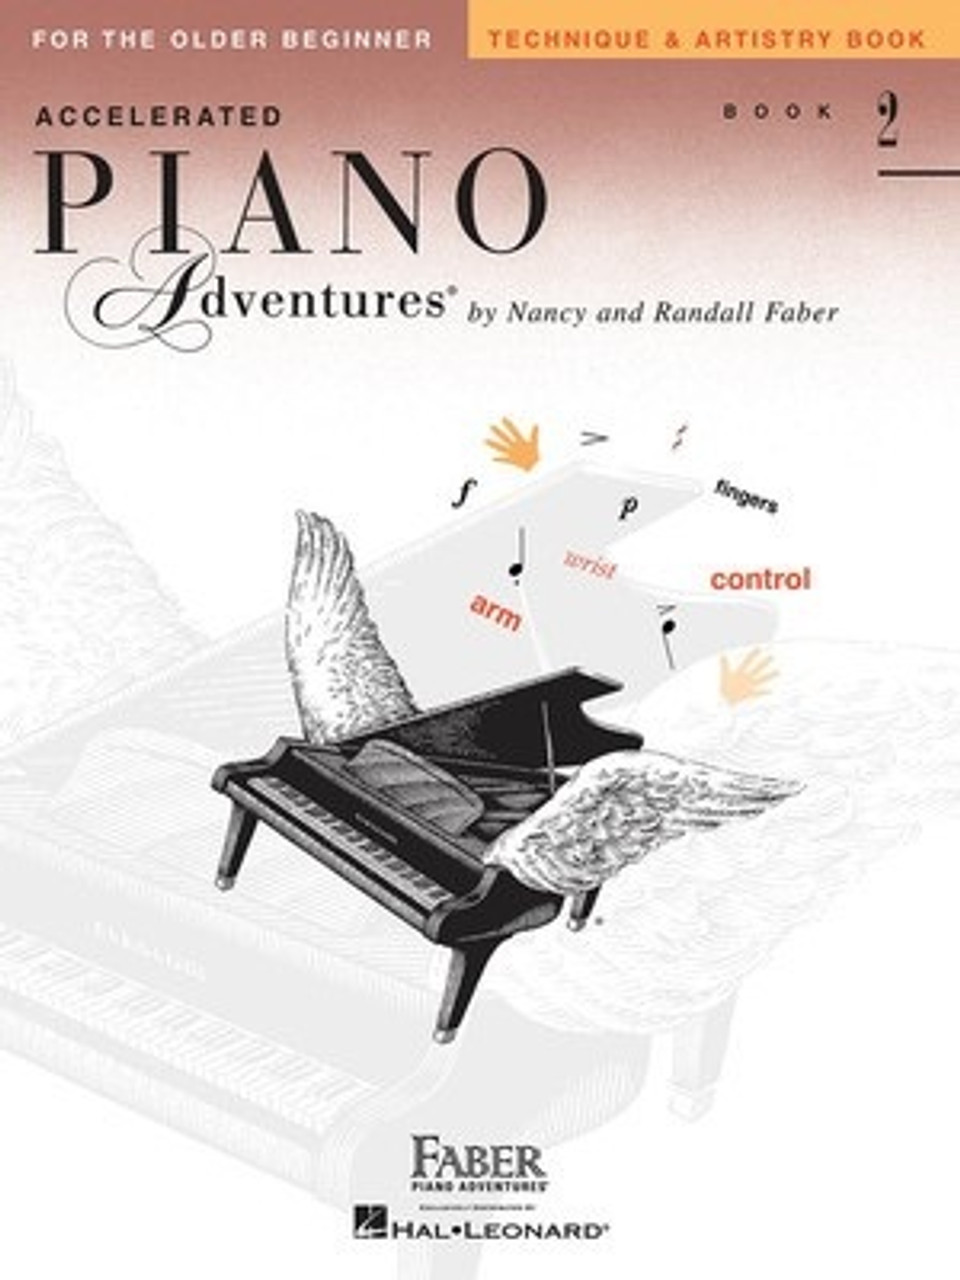 Accelerated Piano Adventures for the Older Beginner Technique & Artistry -  Book 2